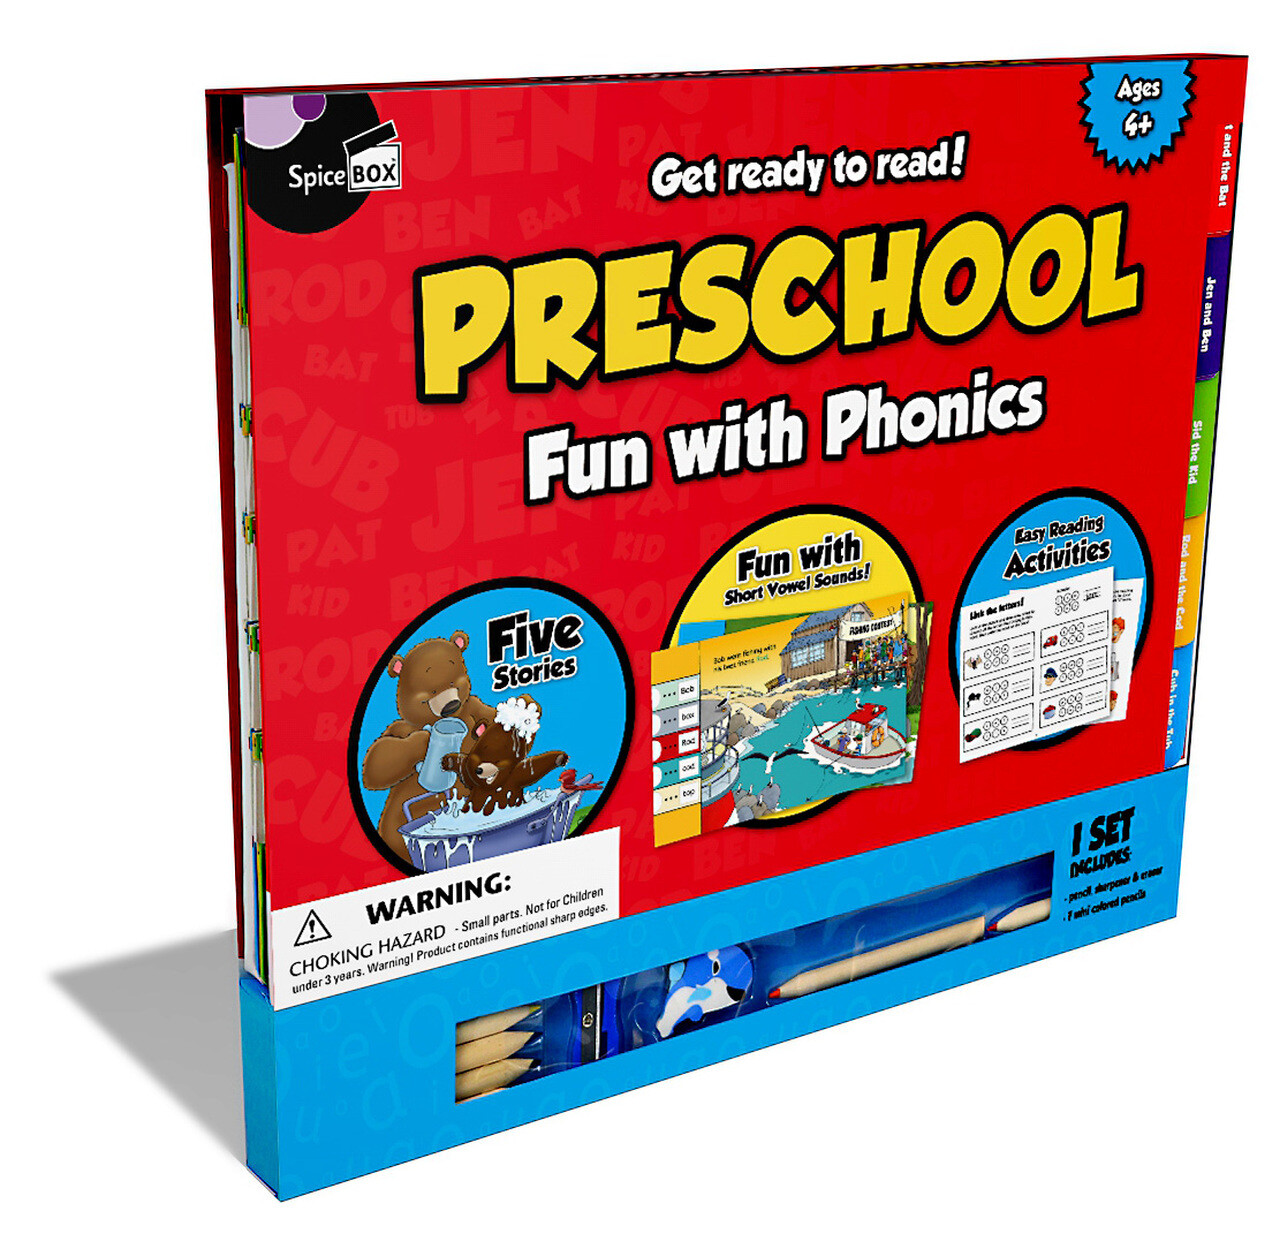 Spice Box; Pre-School Reading Fun with Phonics